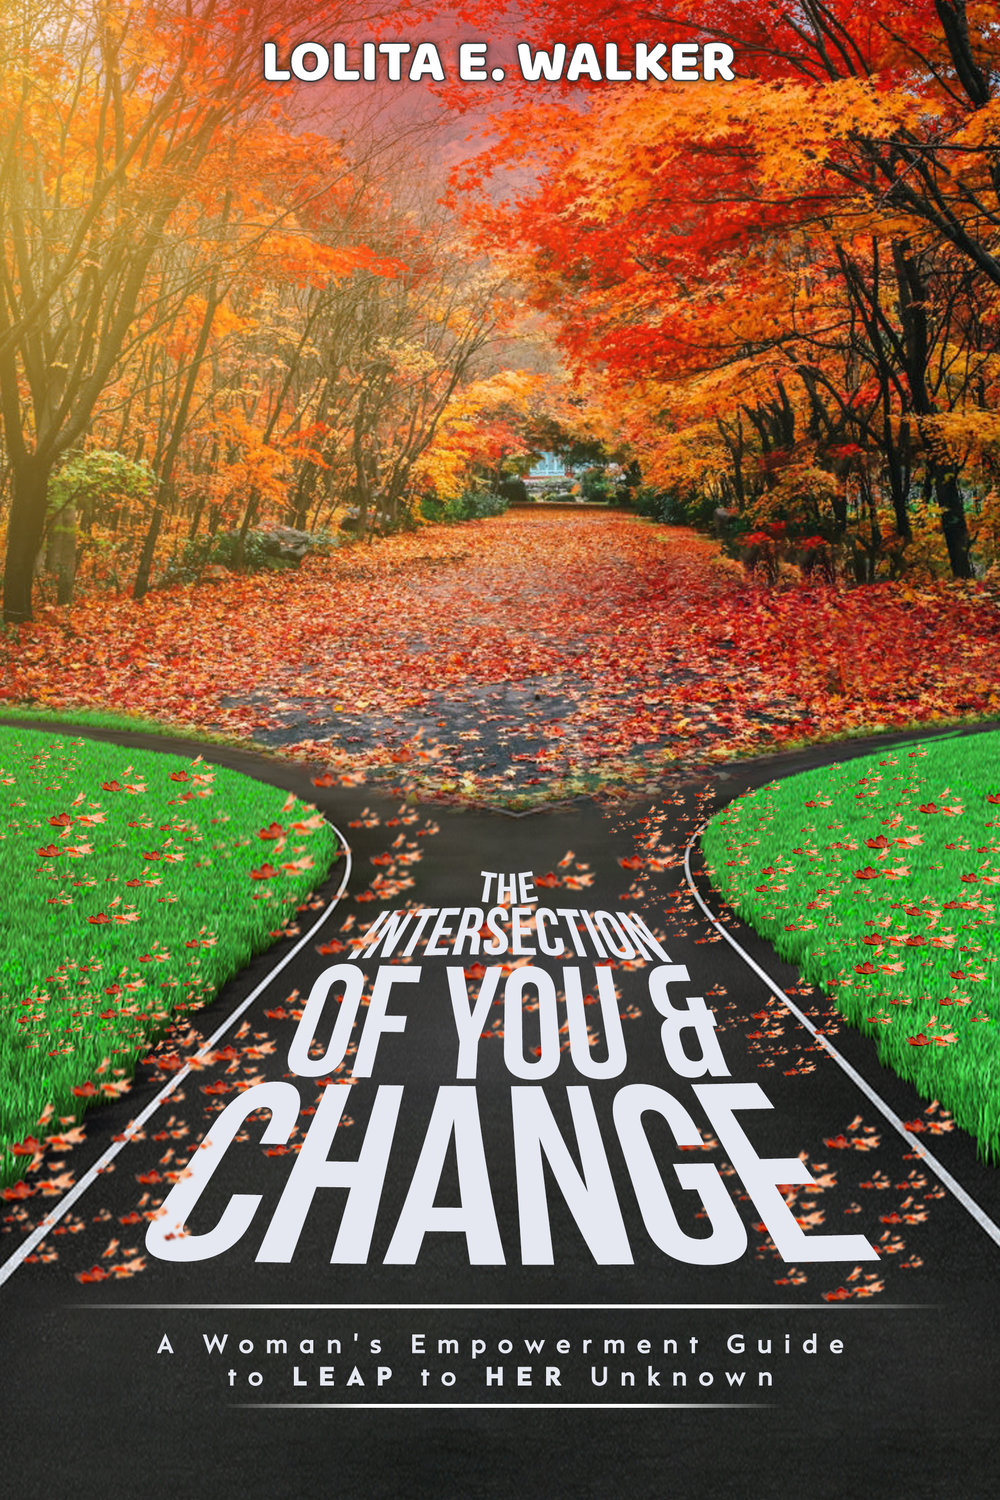 Cover of The Intersection of You & Change by Lolita E. Walker.JPG